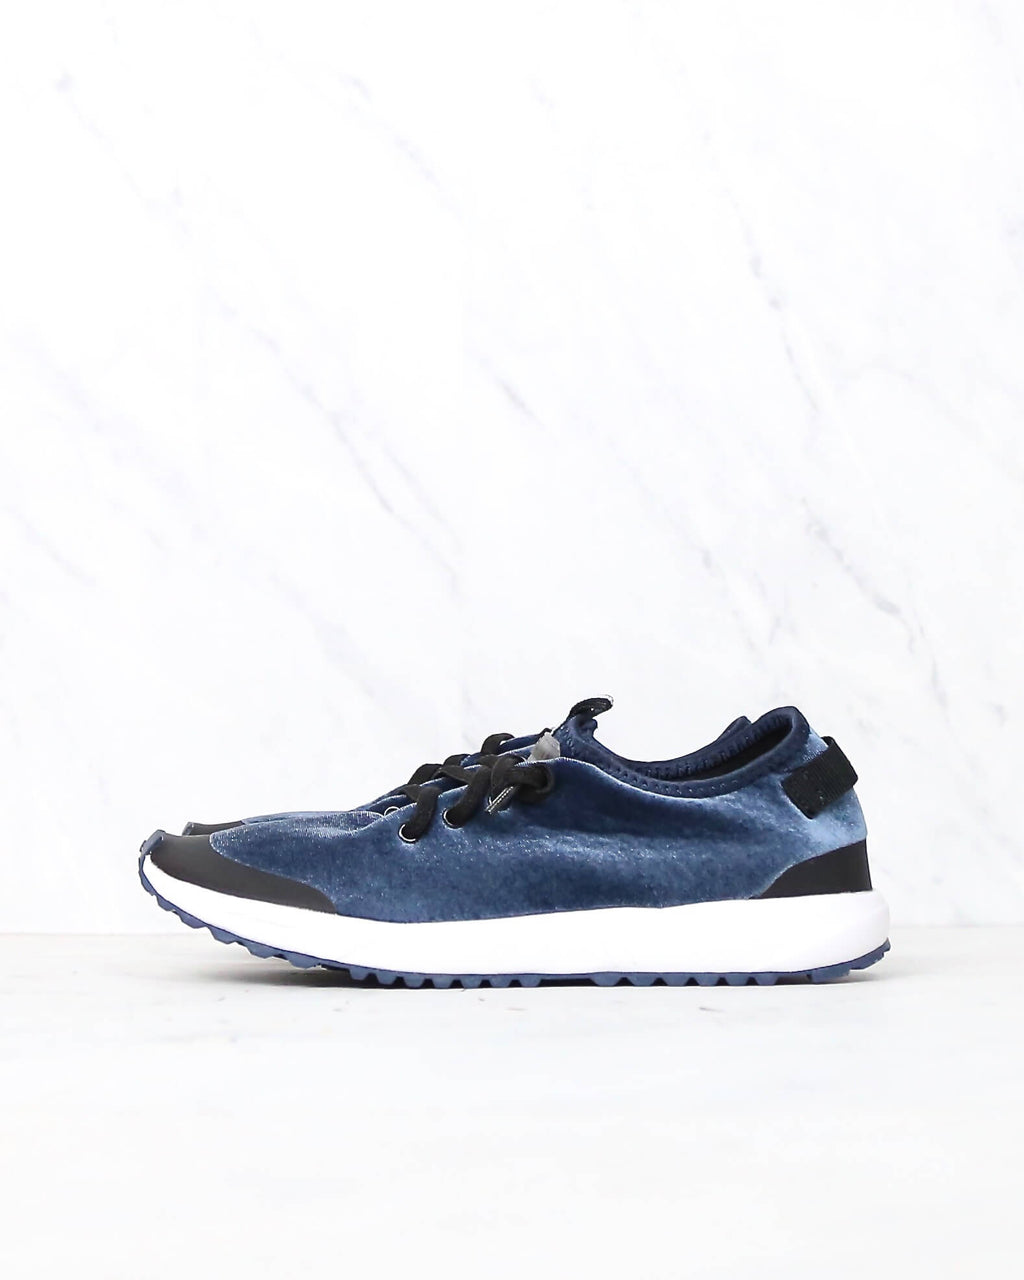 Coolway - Tahali Fit Women's Velvet Blue Sneakers